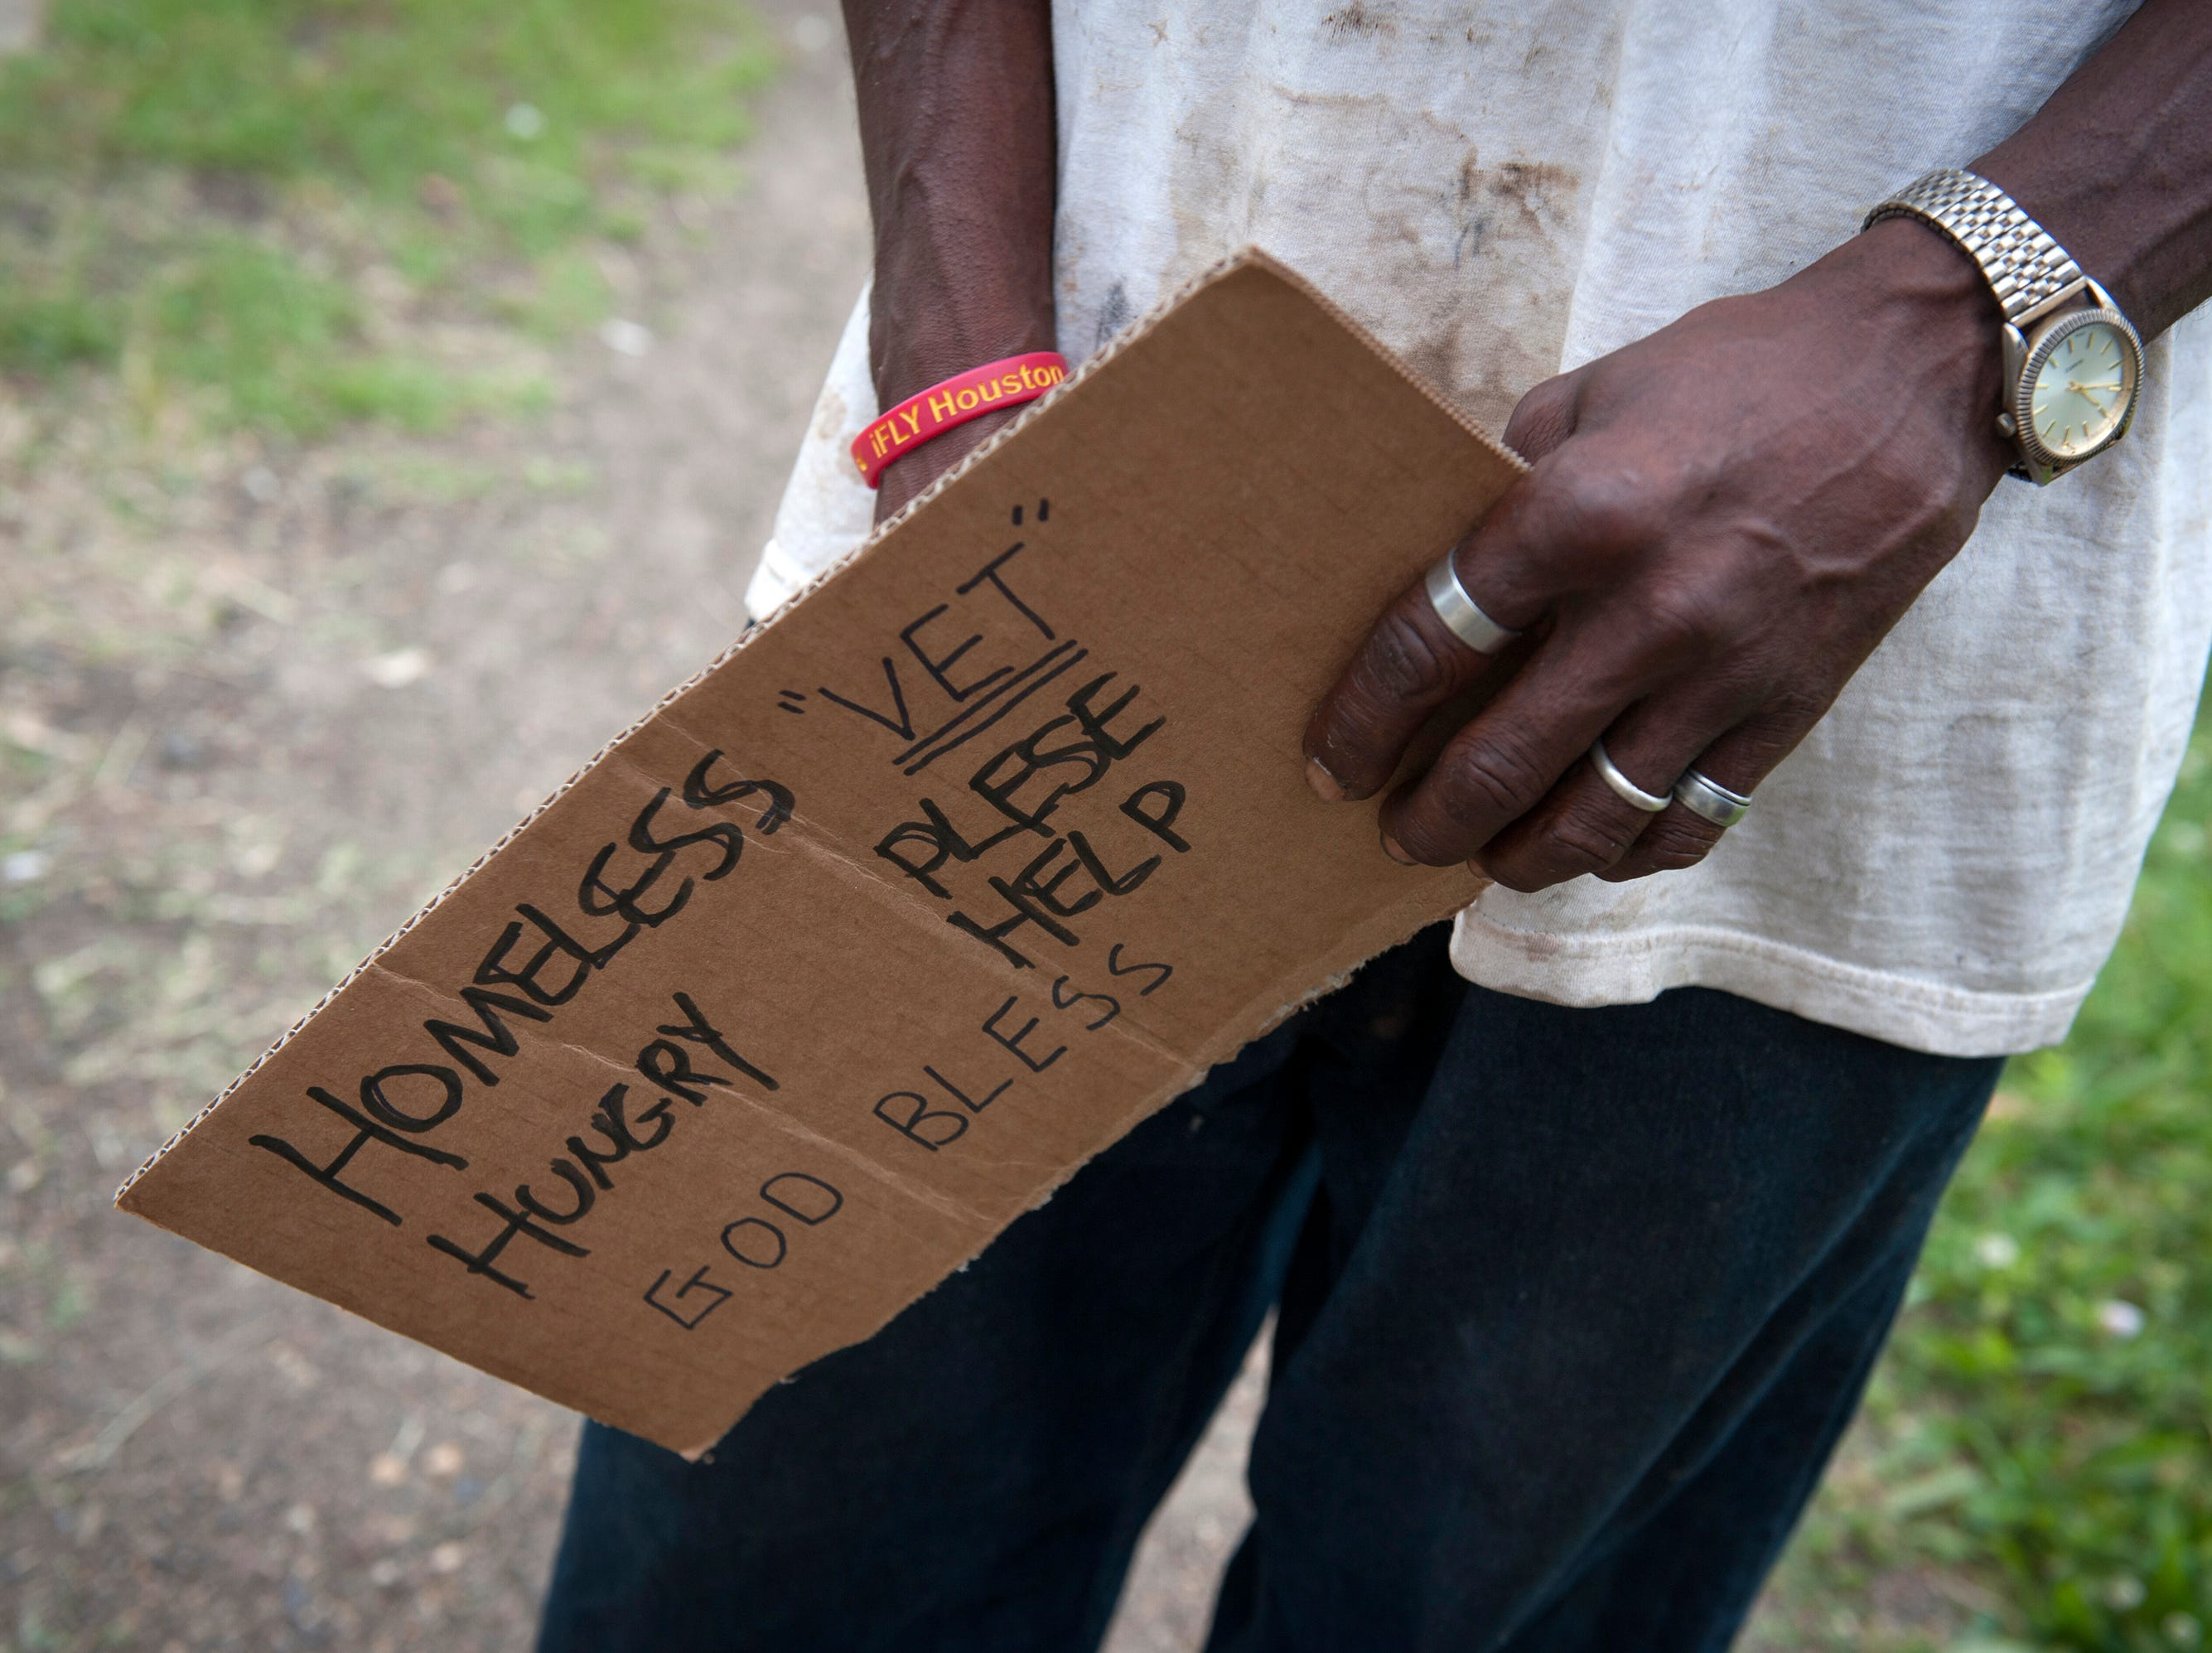 Just as his sign reads, Dan is homeless and a veteran. He admits, though, that problems with alcoholism have caused him trouble in the past and continue to be an issue.